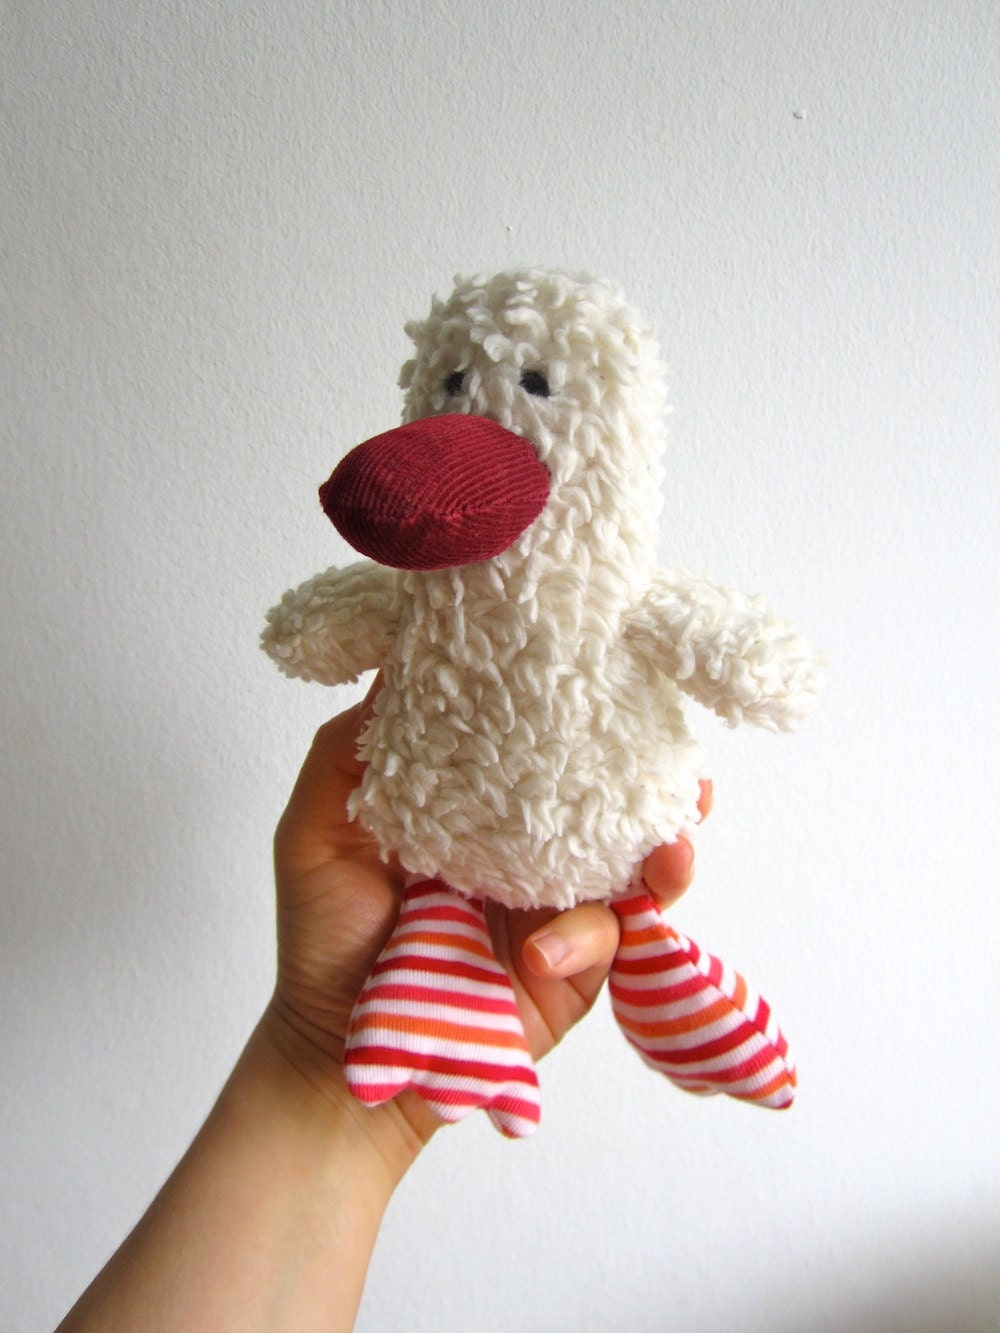 Duck, duckling, organic, eco friendly, baby gift, shower gift, organic kids, soft, cuddly, white, red, ready to ship